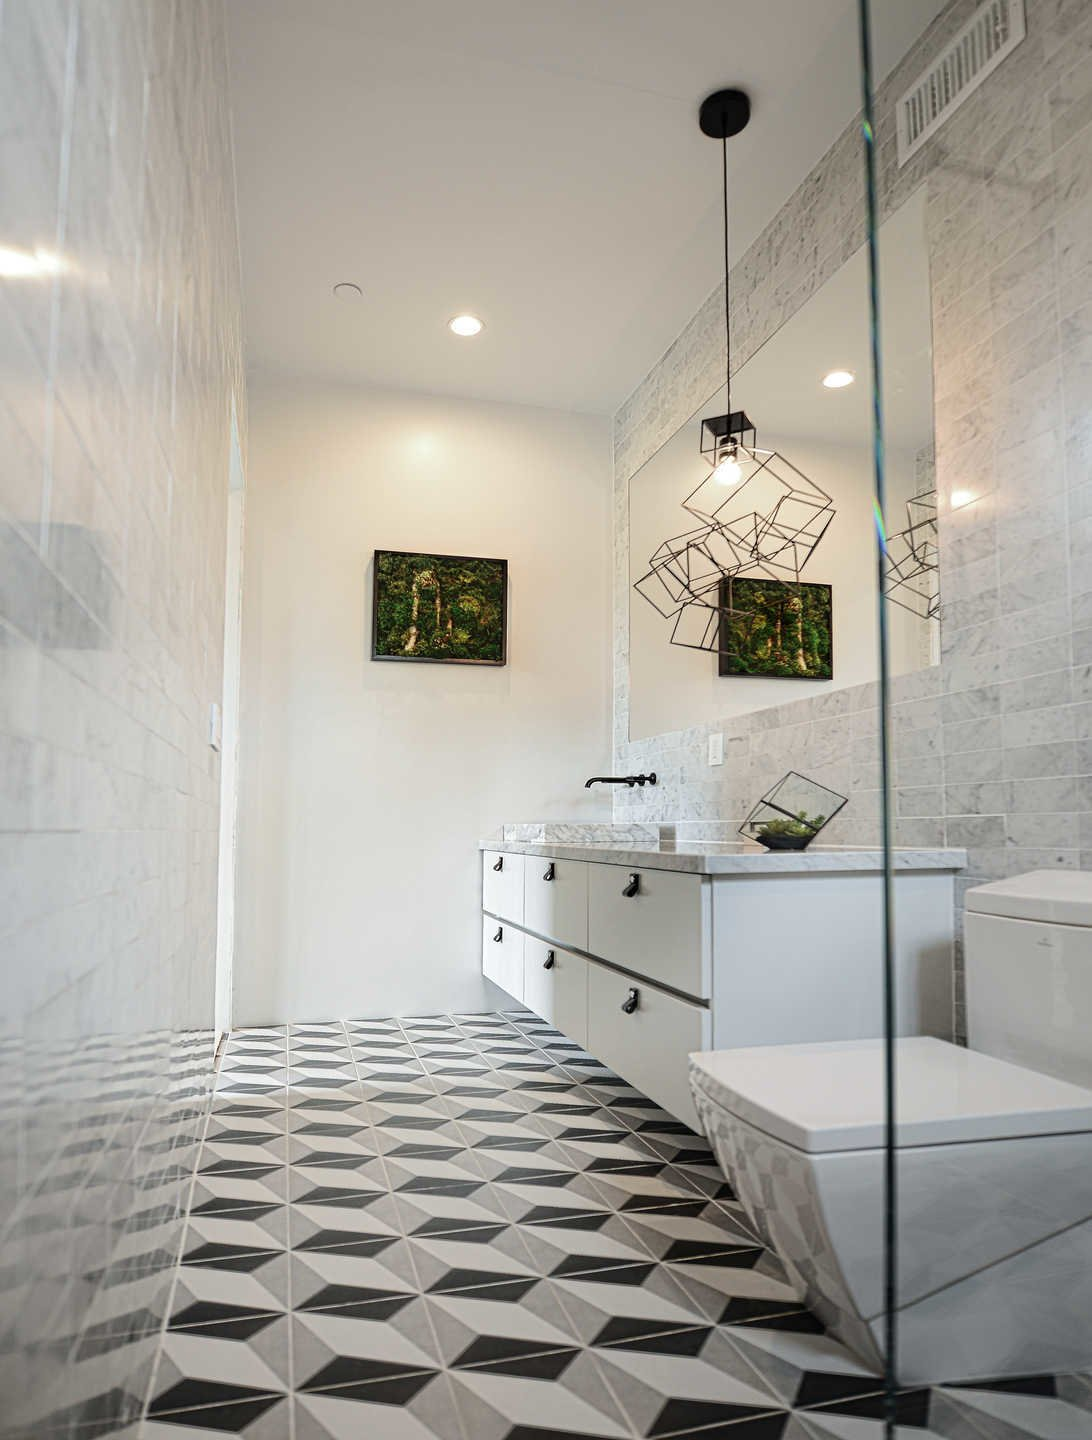 Tagged: Bath Room, Two Piece Toilet, Pendant Lighting, Stone Tile Wall, Ceramic Tile Floor, and Marble Counter.  Italian Modernist Home by Zillow